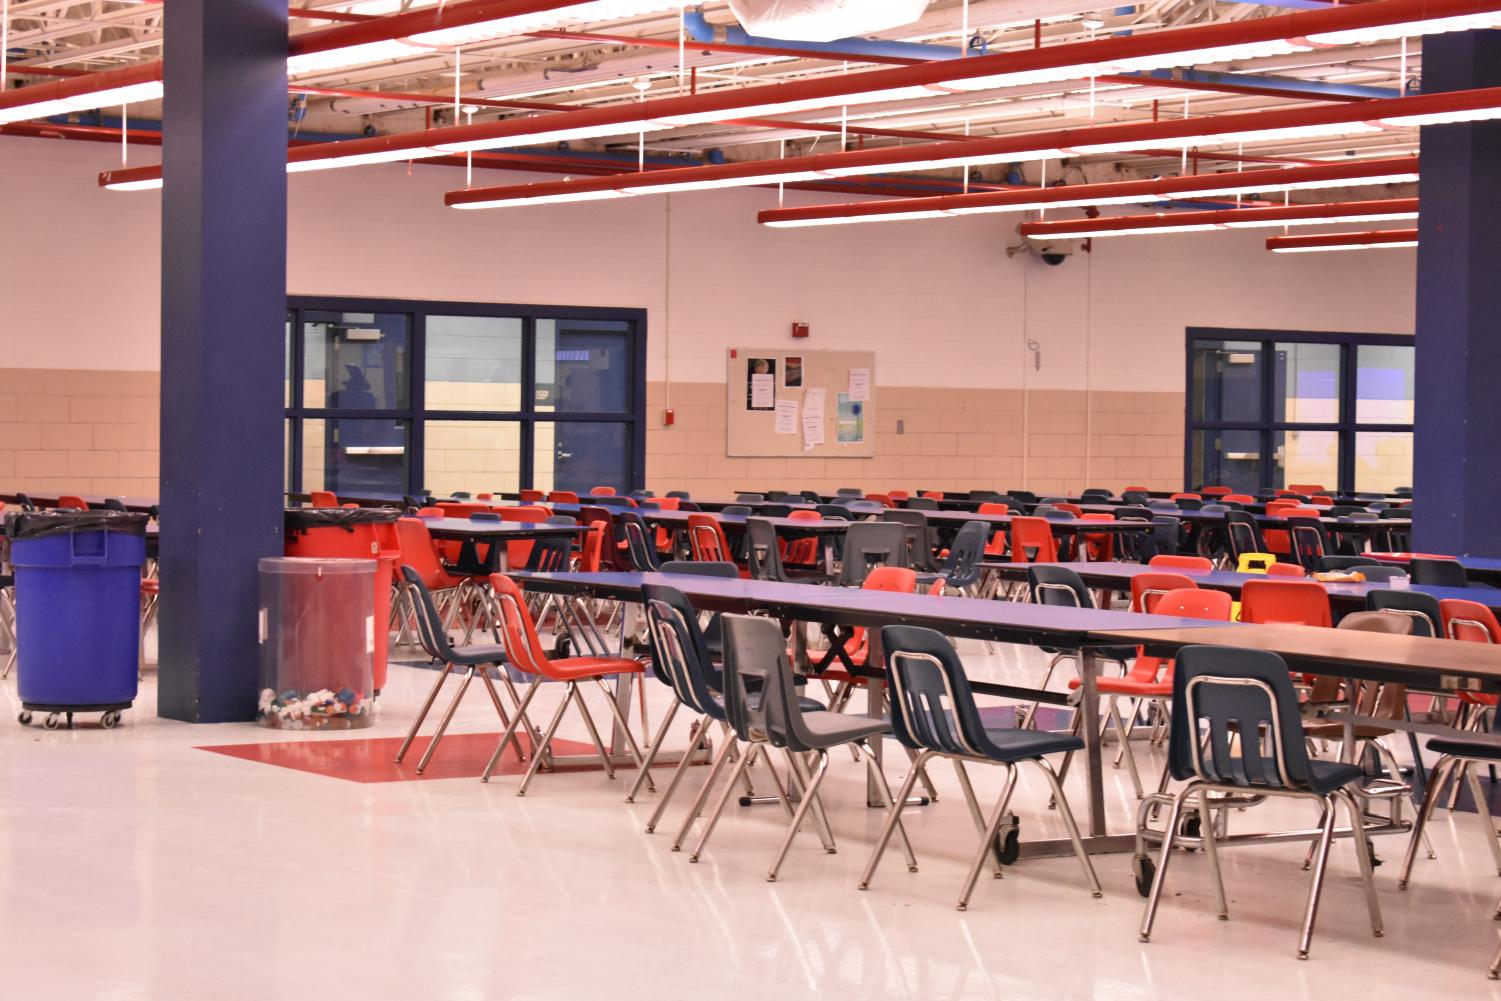 Cafeteria, where the staff works.